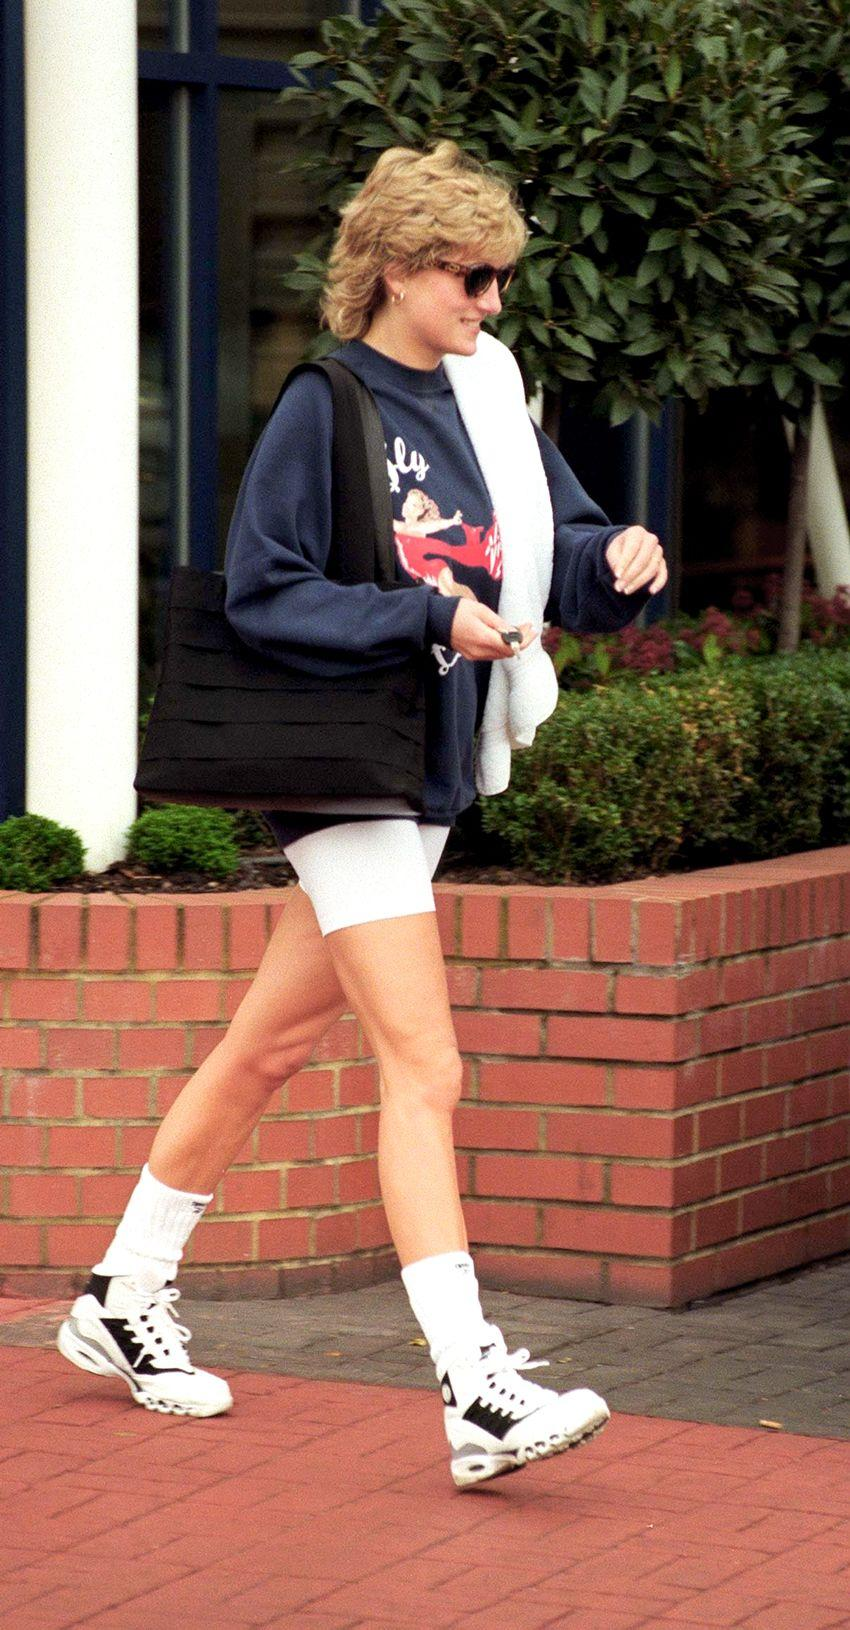 WHO: Princess Diana. Style Notes: Another winning bike shorts ensemble that proves sometimes the simplest combos are often the best. Here, Princess Diana's oversize crewneck sweatshirt, tube socks, and chunky-soled sneakers may be coming from the gym, but we'd gladly wear them together to lounge or run errands on the weekend, too.